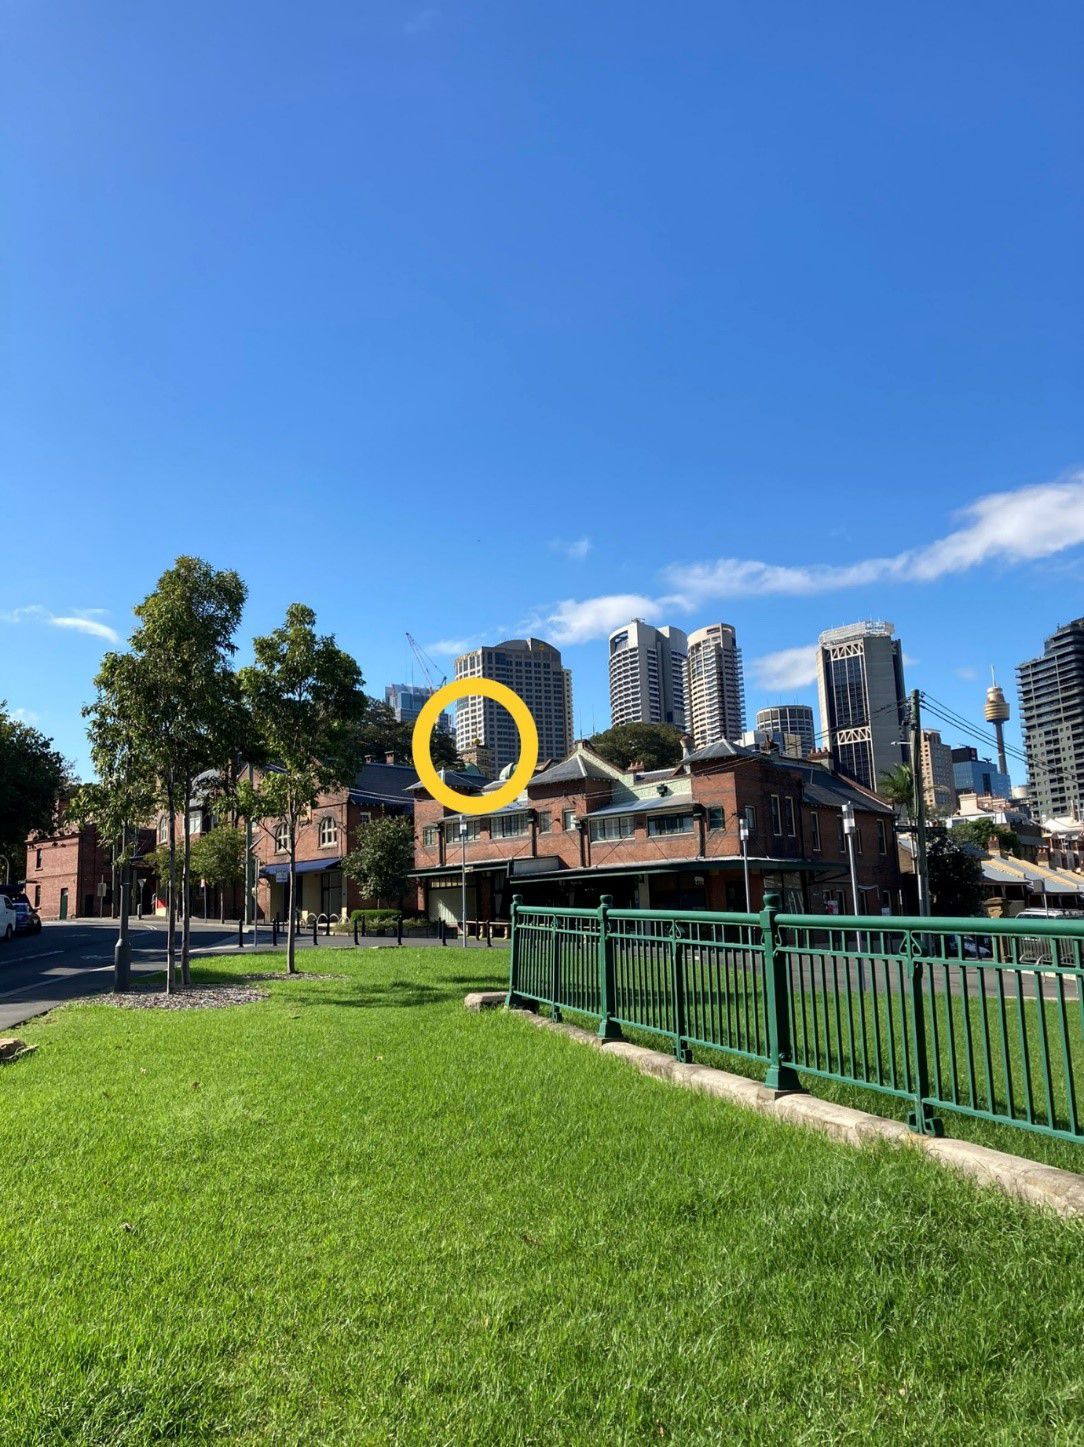 The view of Sydney Observatory's time ball in 2021 from from Munn Reserve, Millers Point. Nancy Cushing, March 2021.